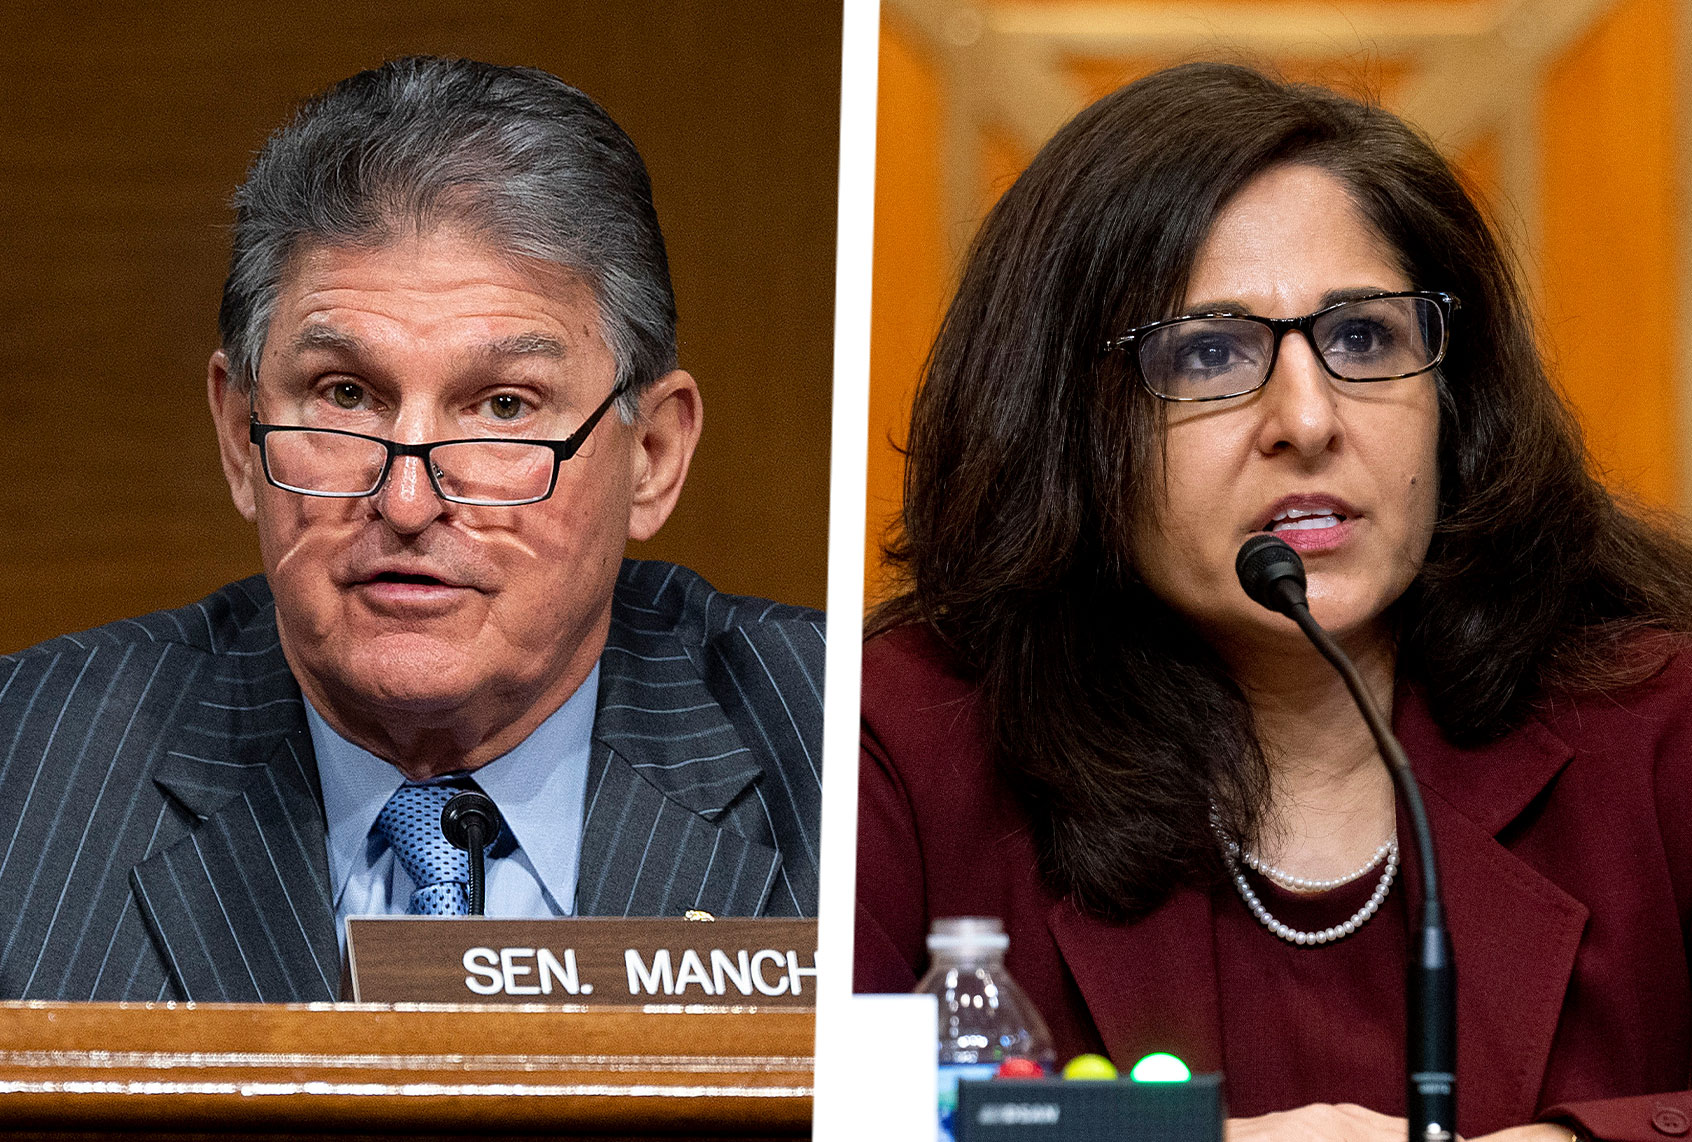 <p>Joe Manchin, who voted to Affirm Brett Kavanaugh, to vote against Neera Tanden over mean tweets thumbnail